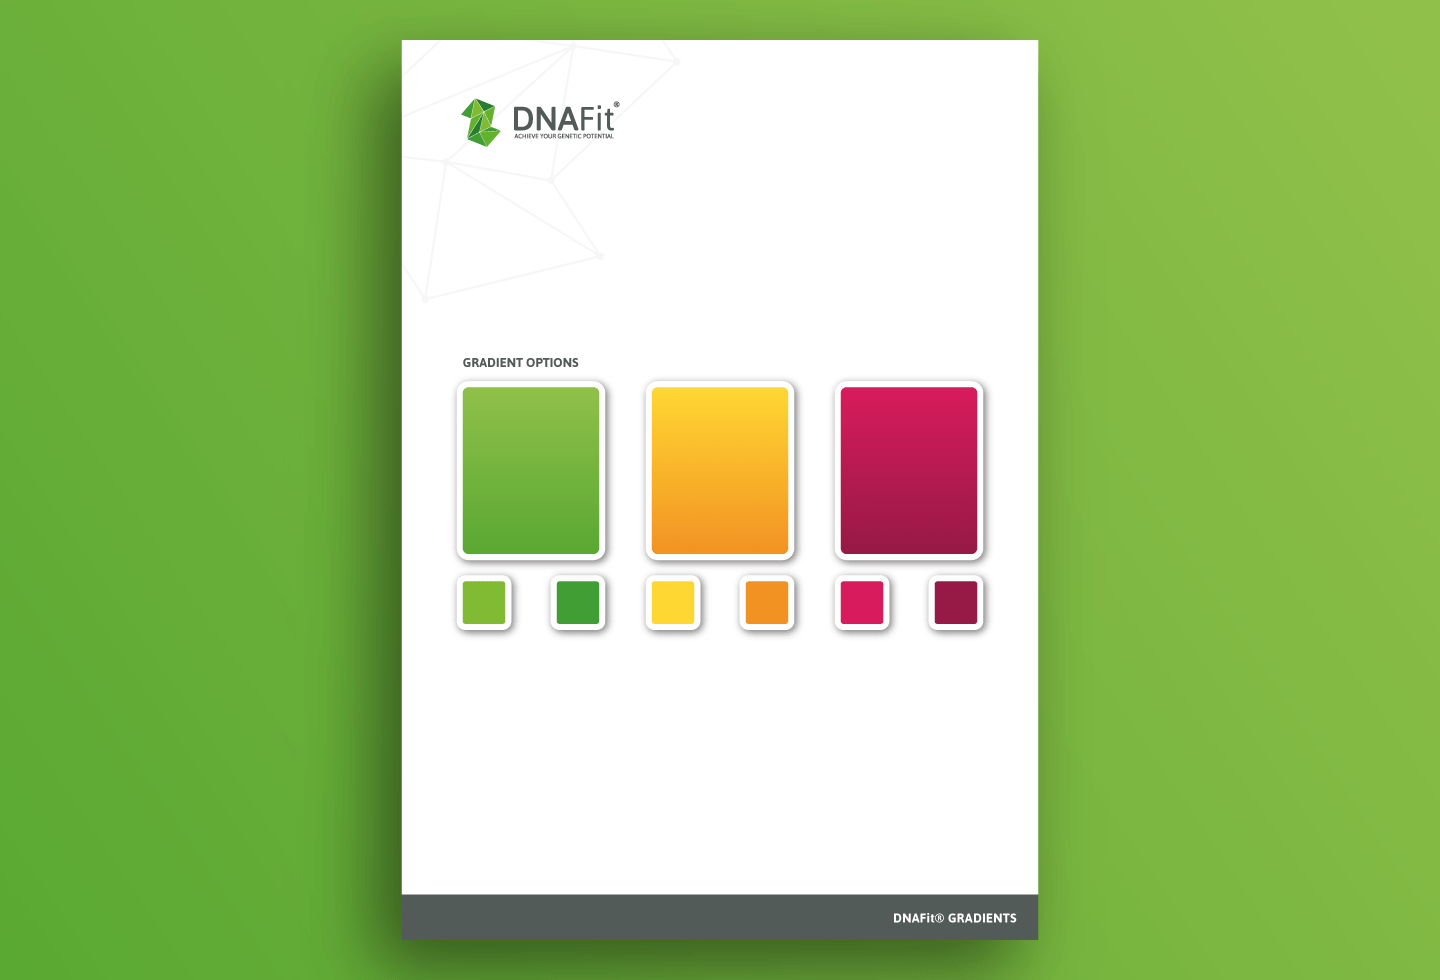 Color gradients